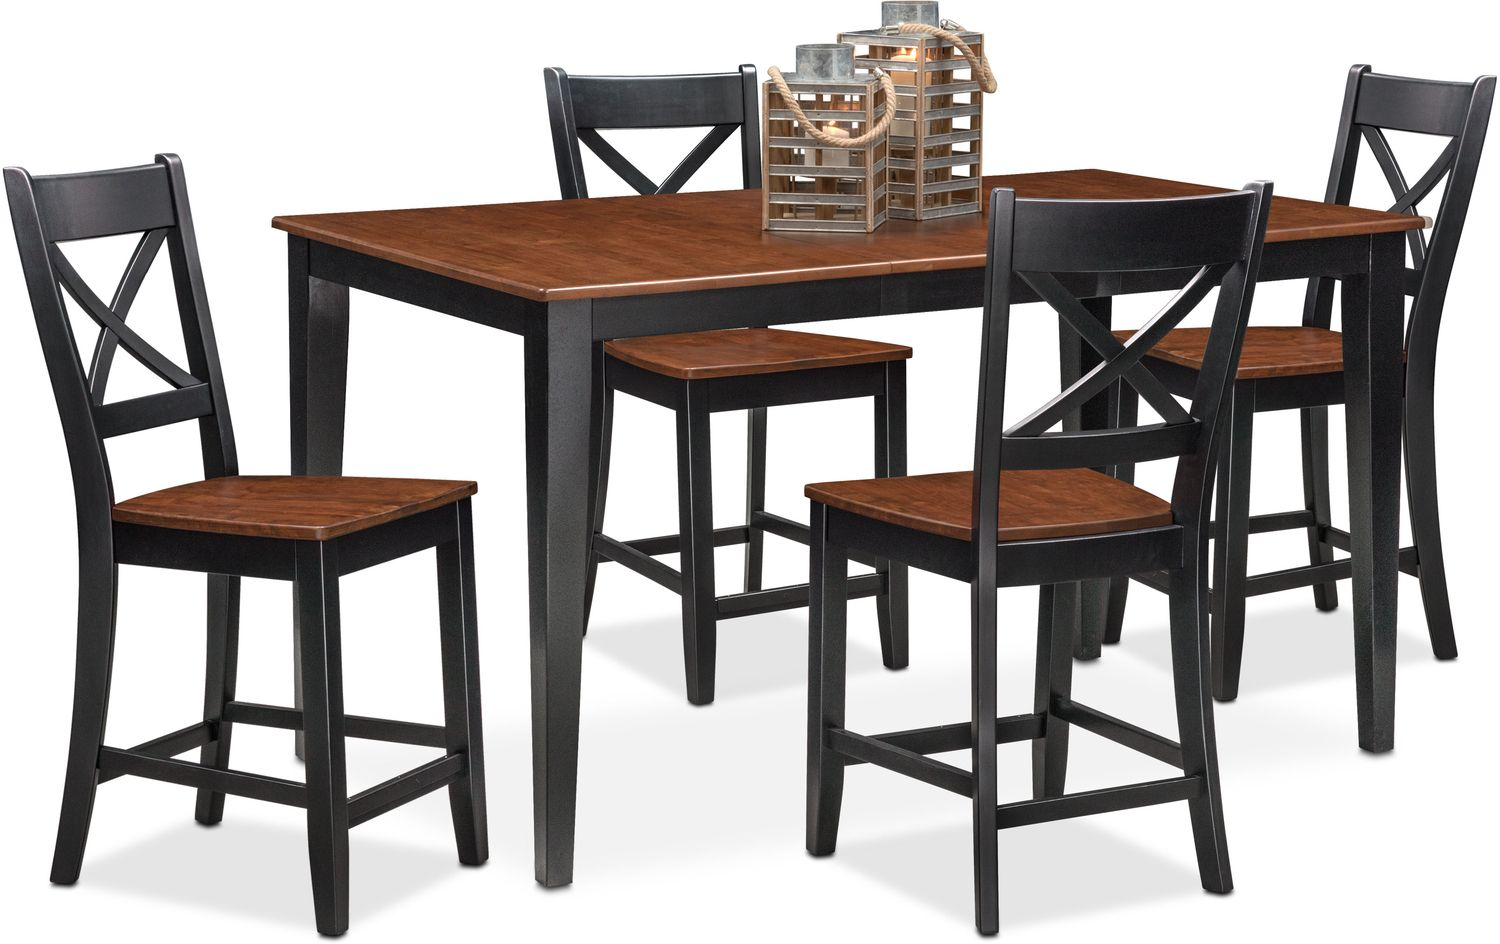 Counter Height Dining Room Chairs Nantucket Counter Height Table And 4 Side Chairs Black